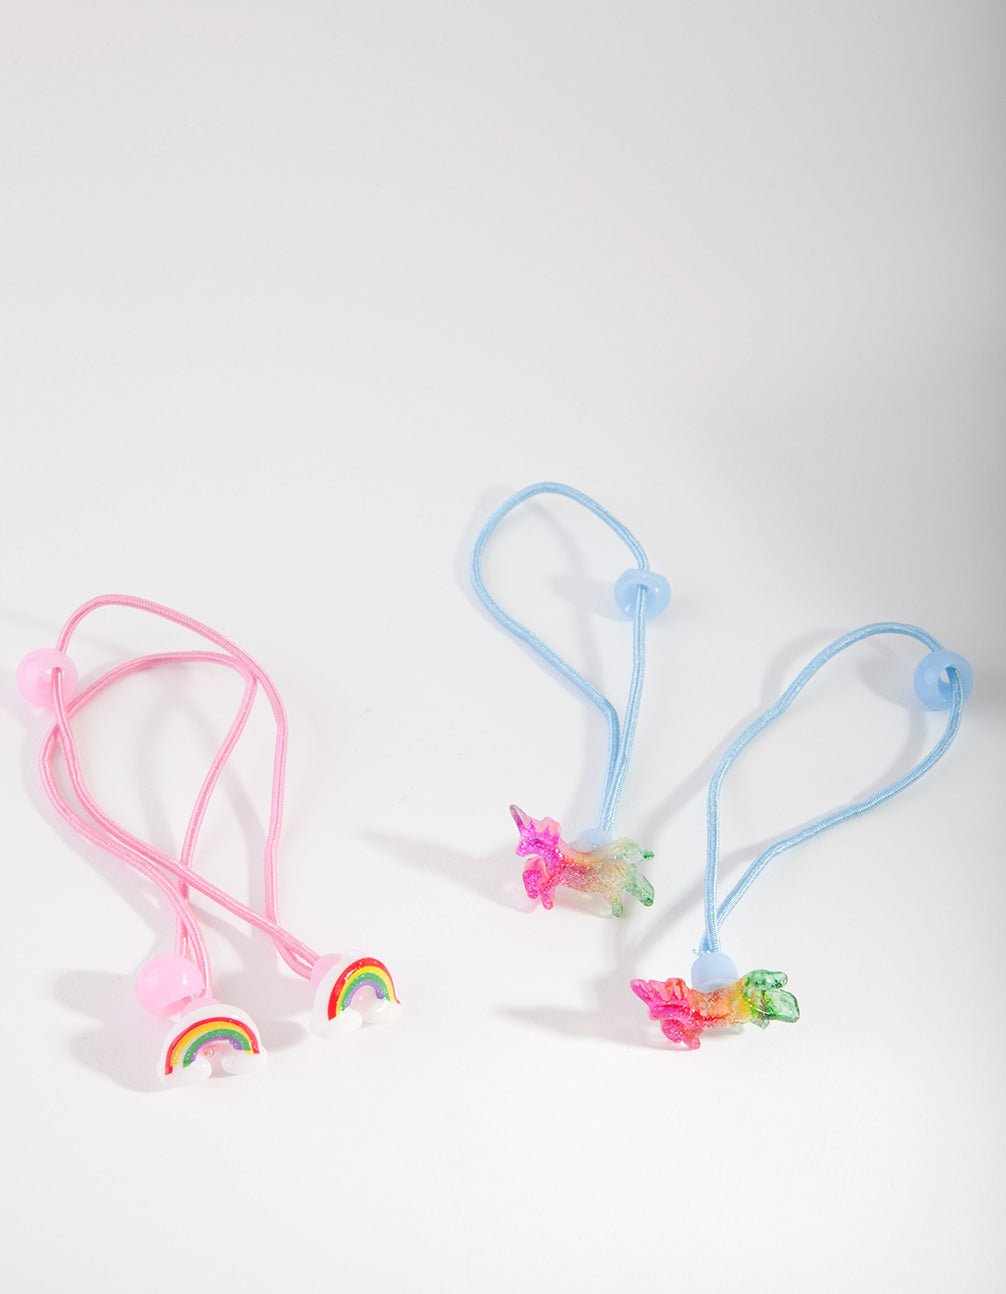 Multi-Colour Novelty Hair Tie 4 Pack